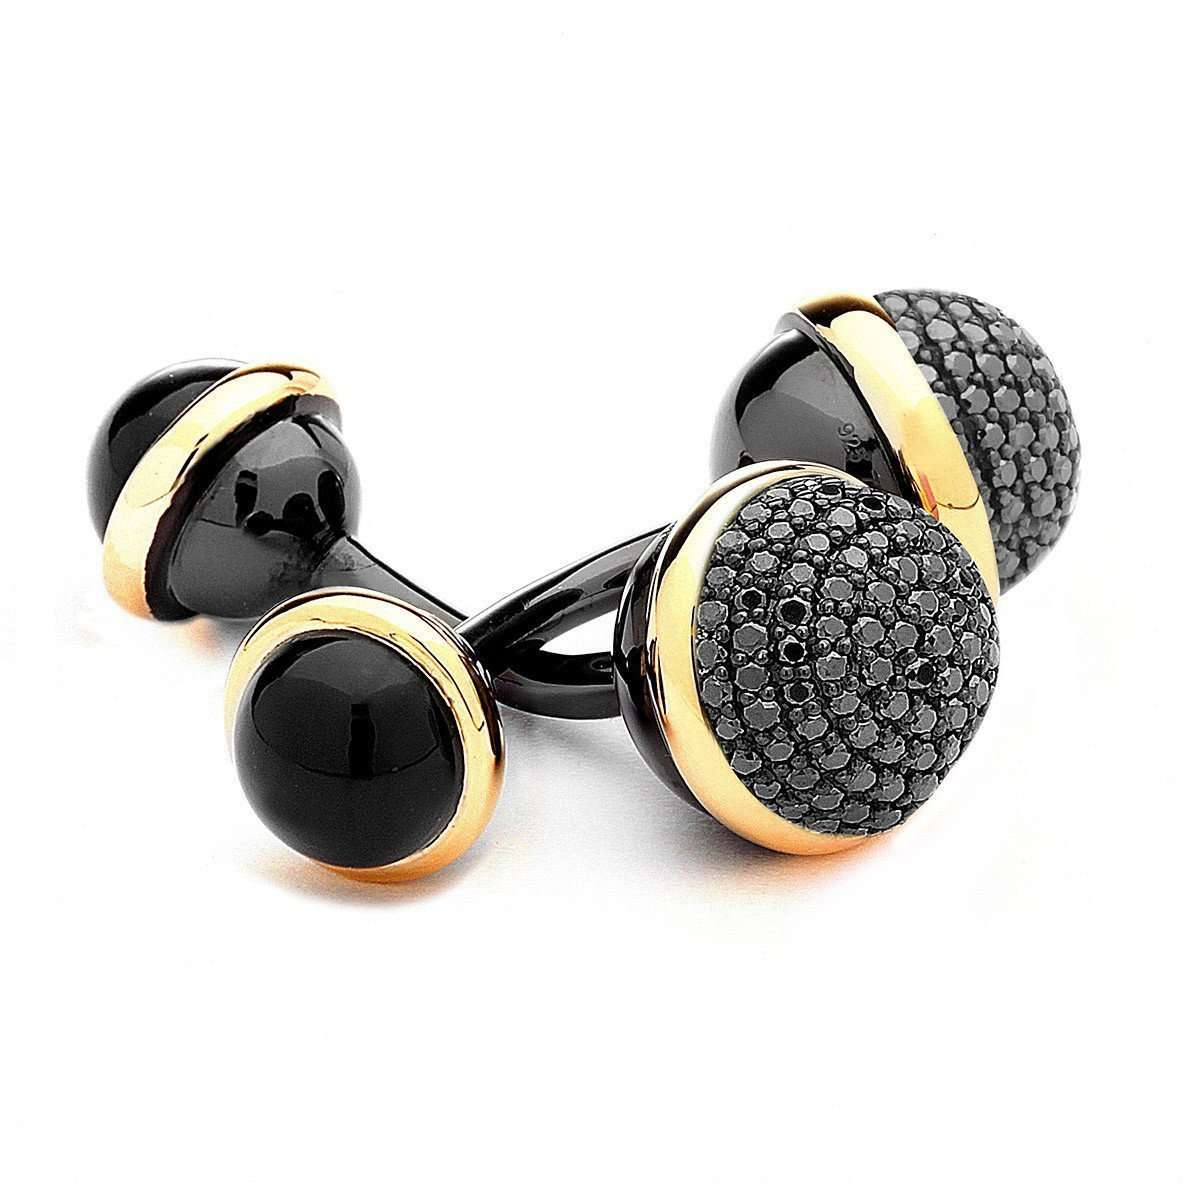 Syna 18kt 925 Yellow Diamonds and Black Onyx Cufflinks MyizJ6YWif